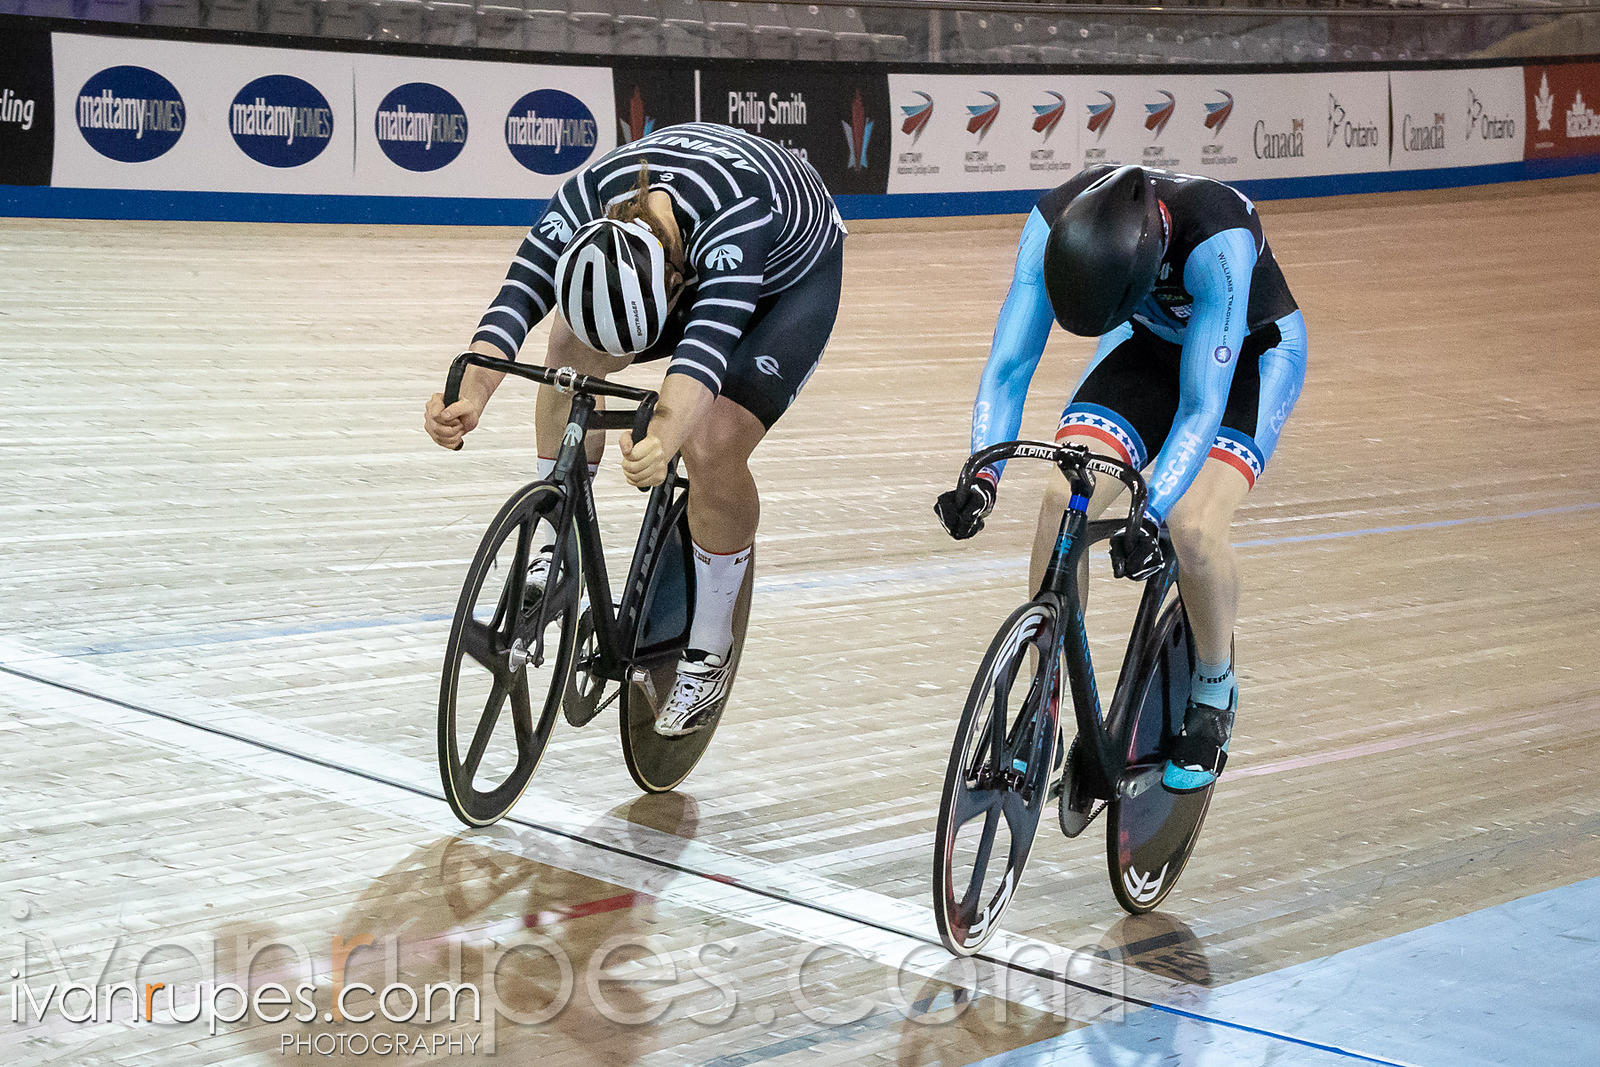 Men Keirin 1-6 Final. Ontario Track Championships, March 3, 2019